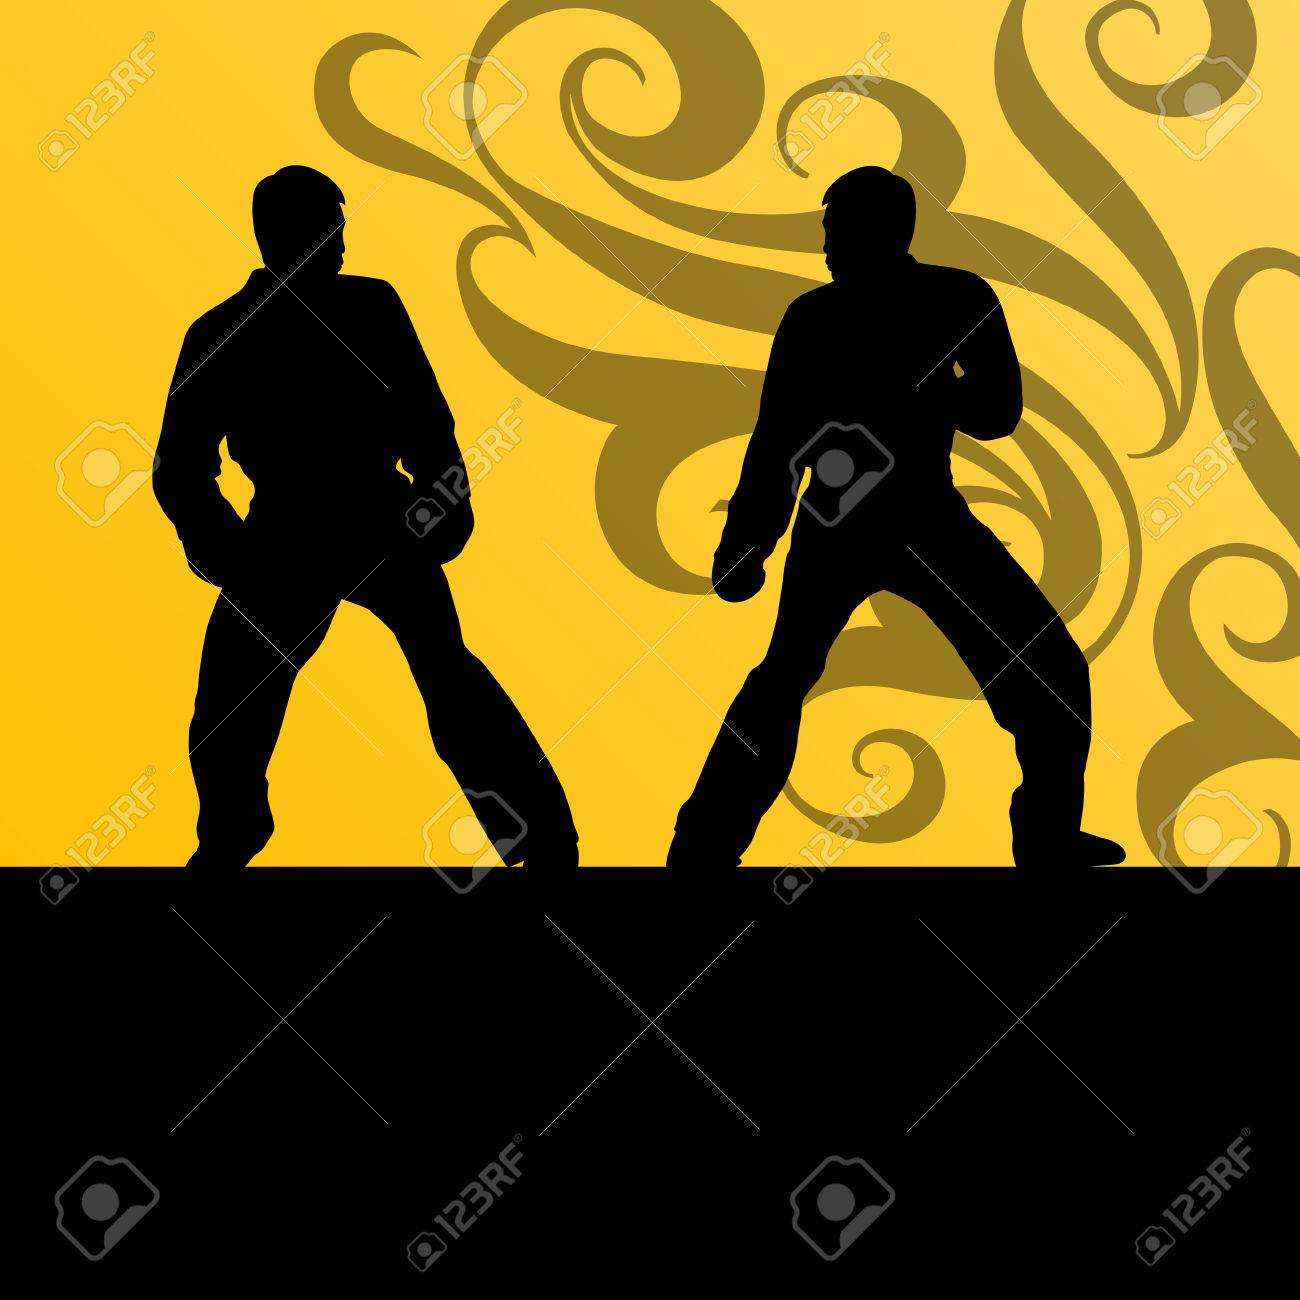 Active tae kwon do martial arts fighters combat fighting and kicking sport silhouettes illustration background vector Stock Vector - 22893771